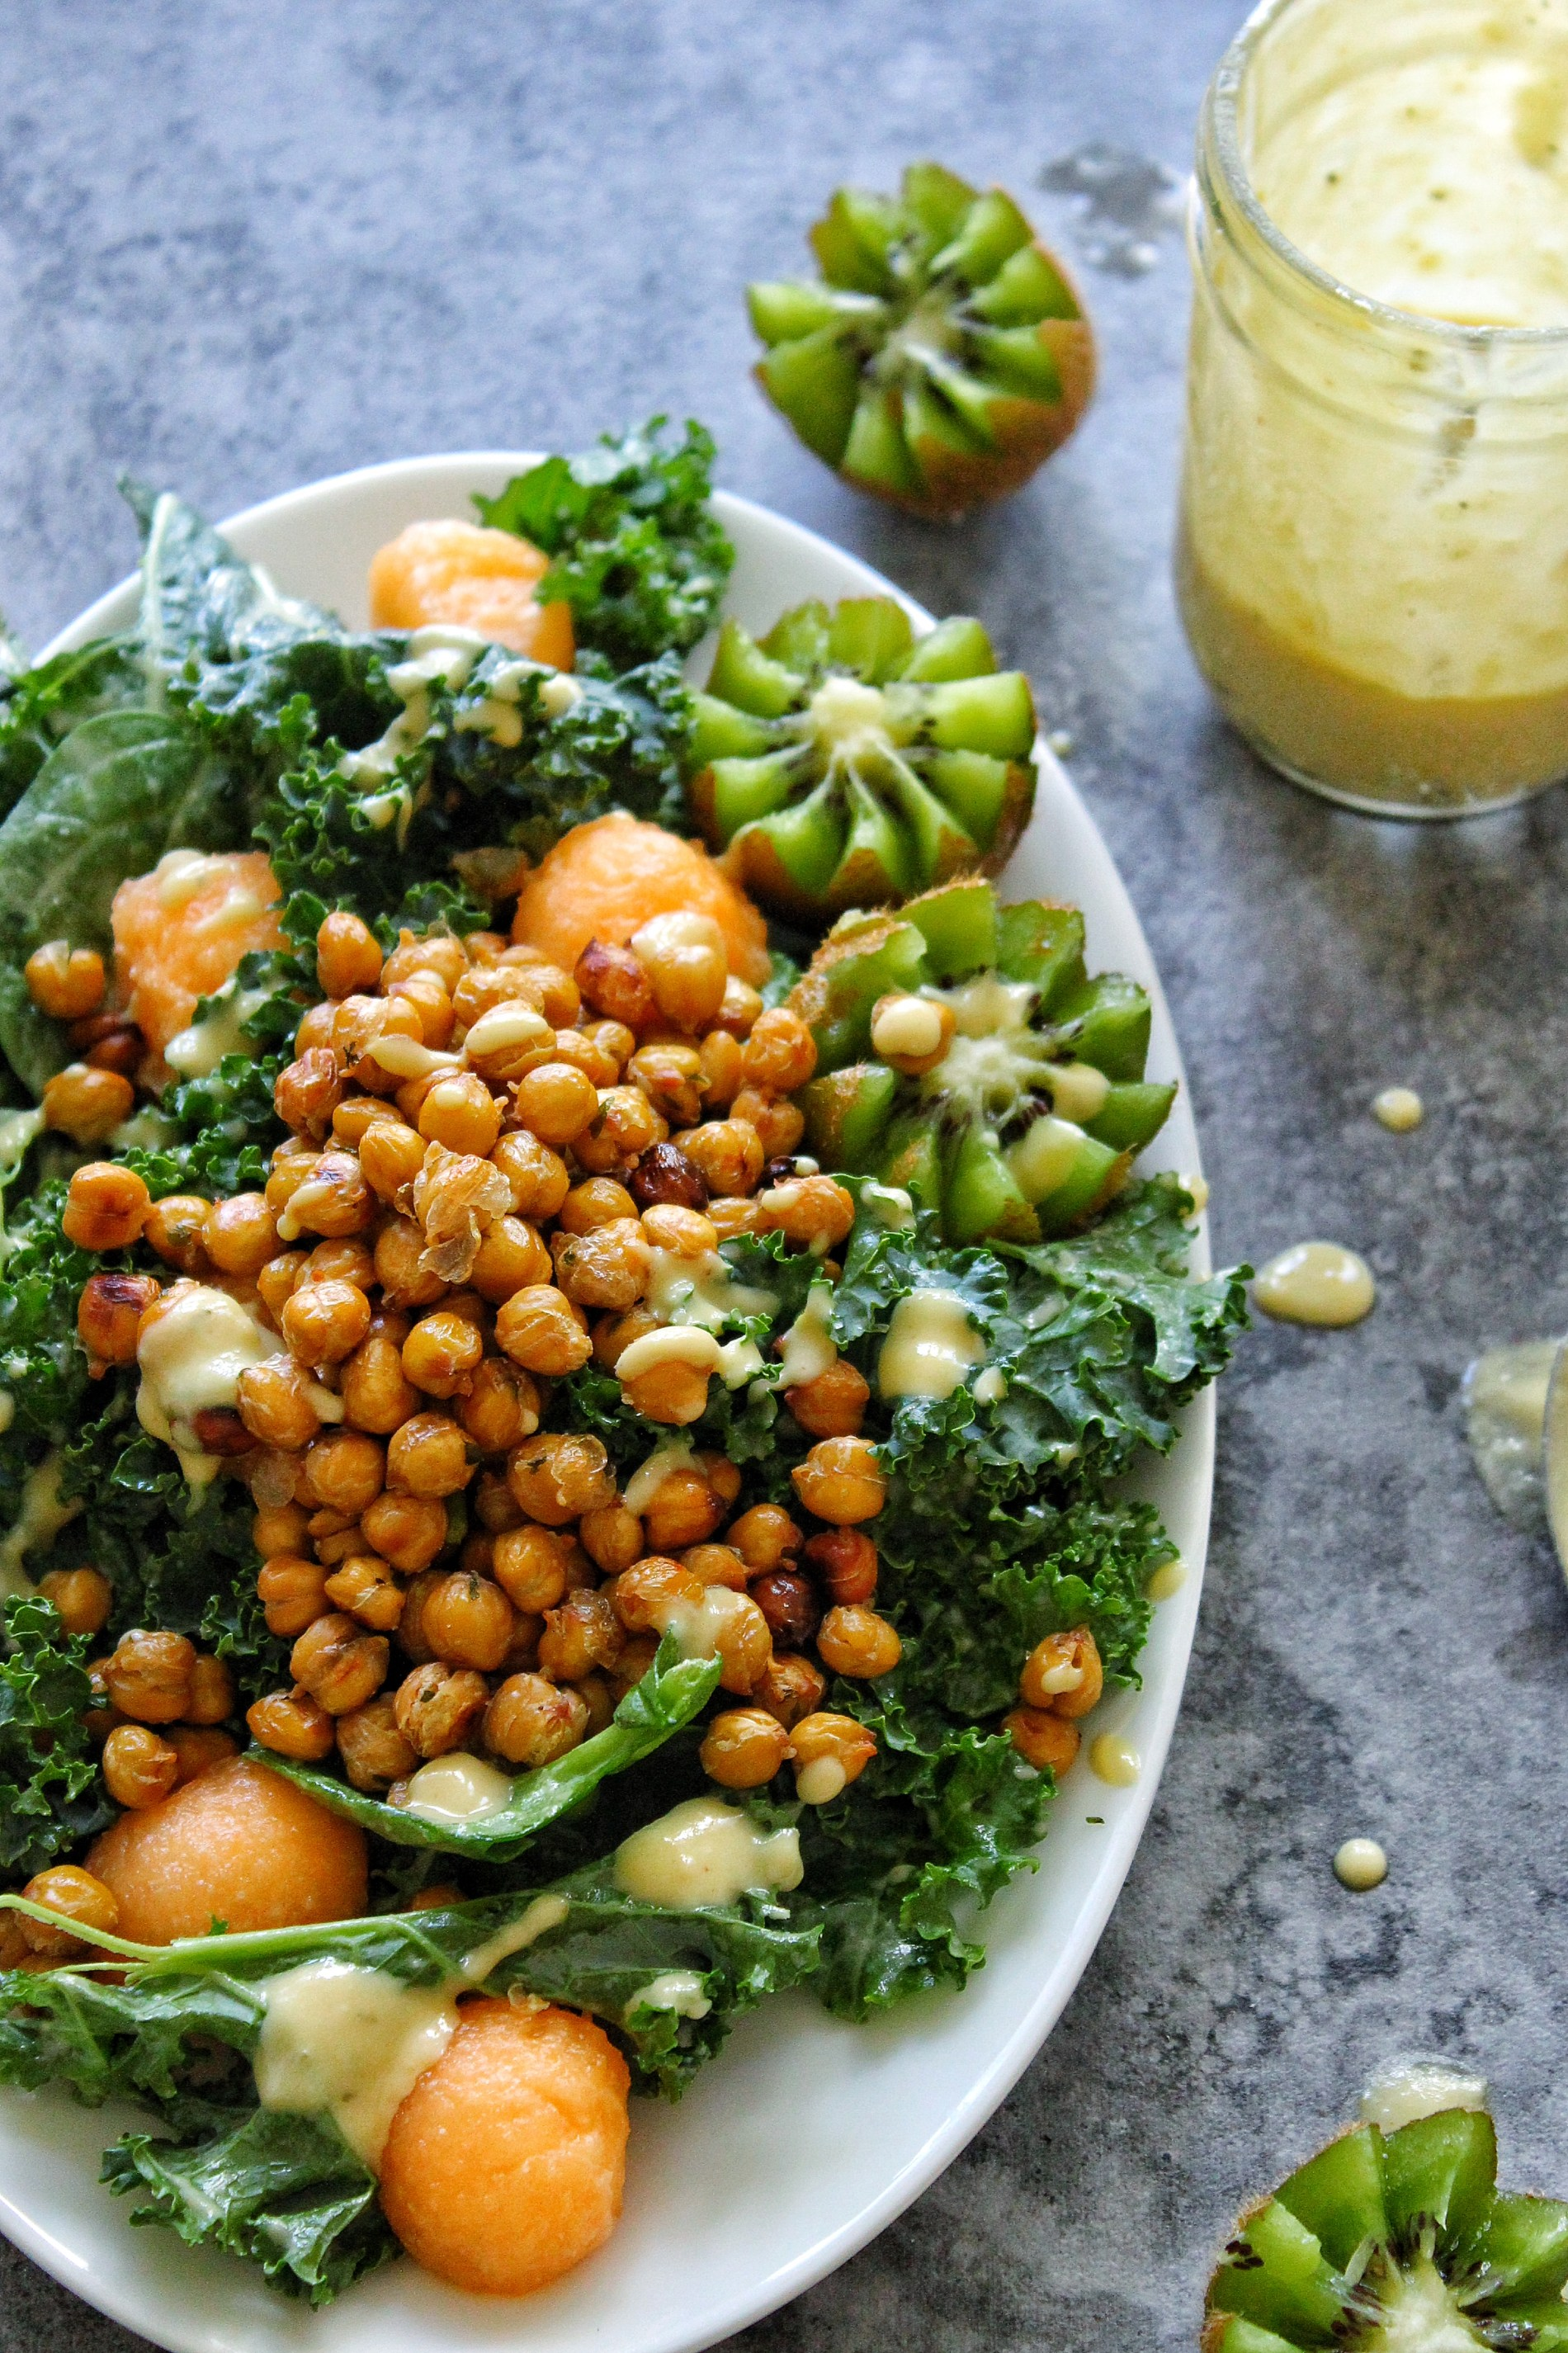 kale and spinach salad